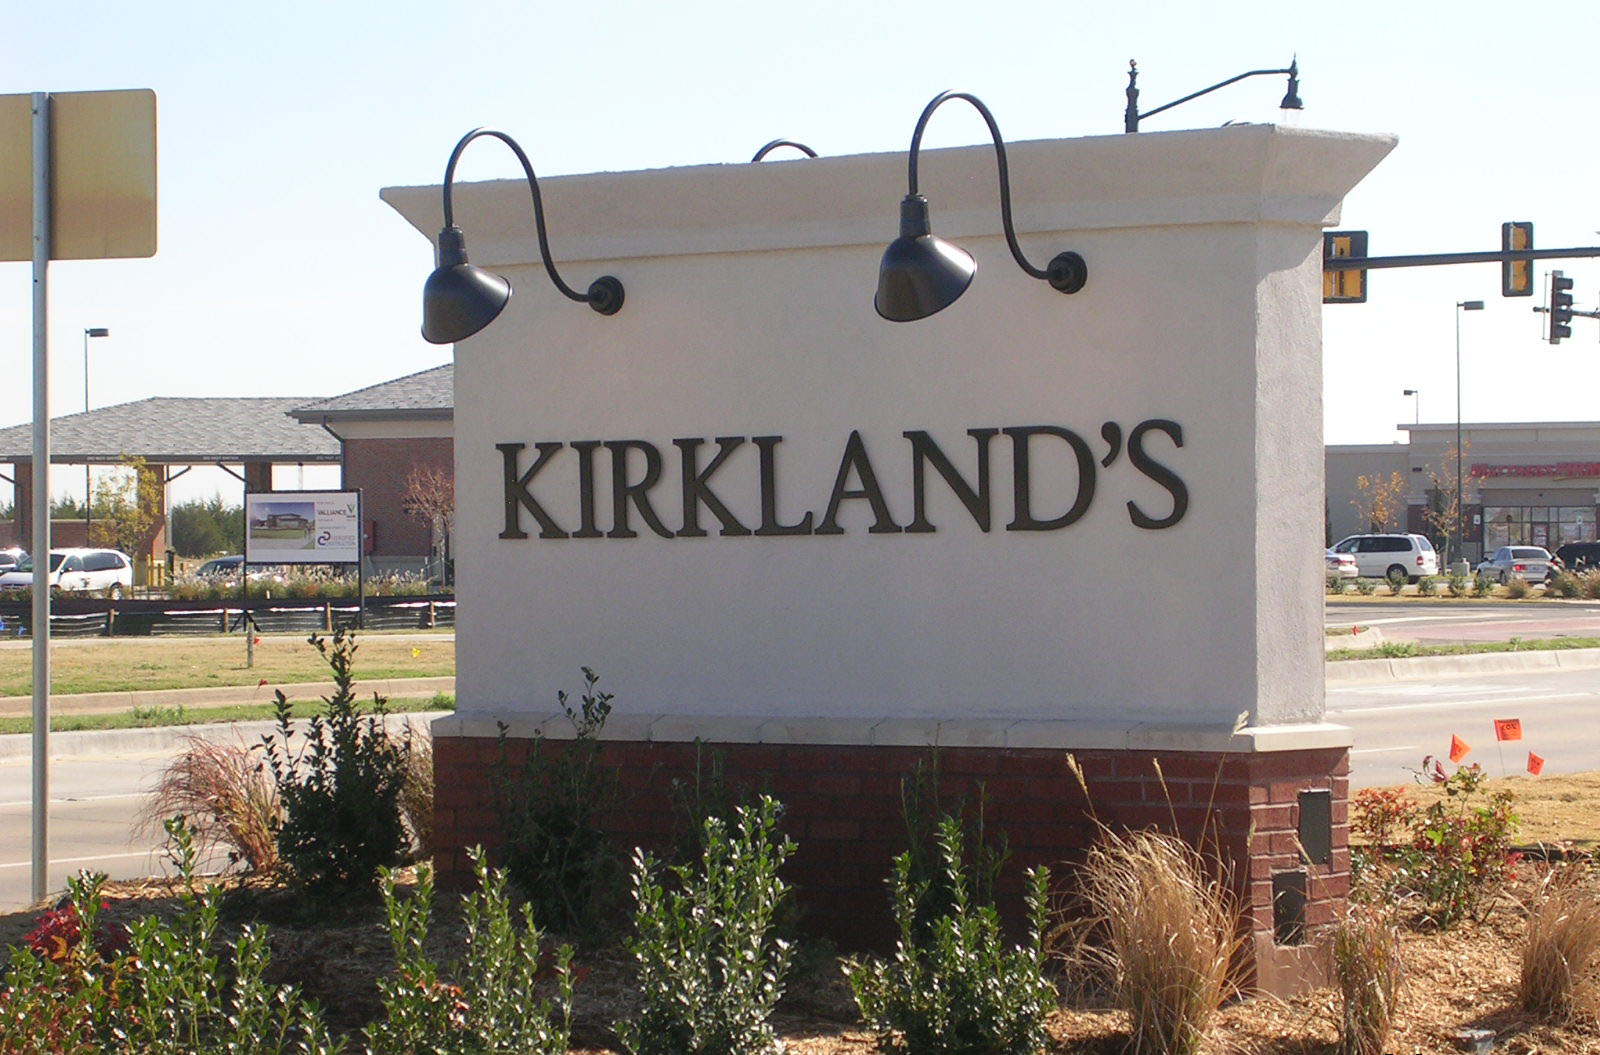 Kirkland's Flooring is a full service flooring company. We cater to: Home Owners, Installers / Contractors, Residential Builders, & Real Estate Developers.